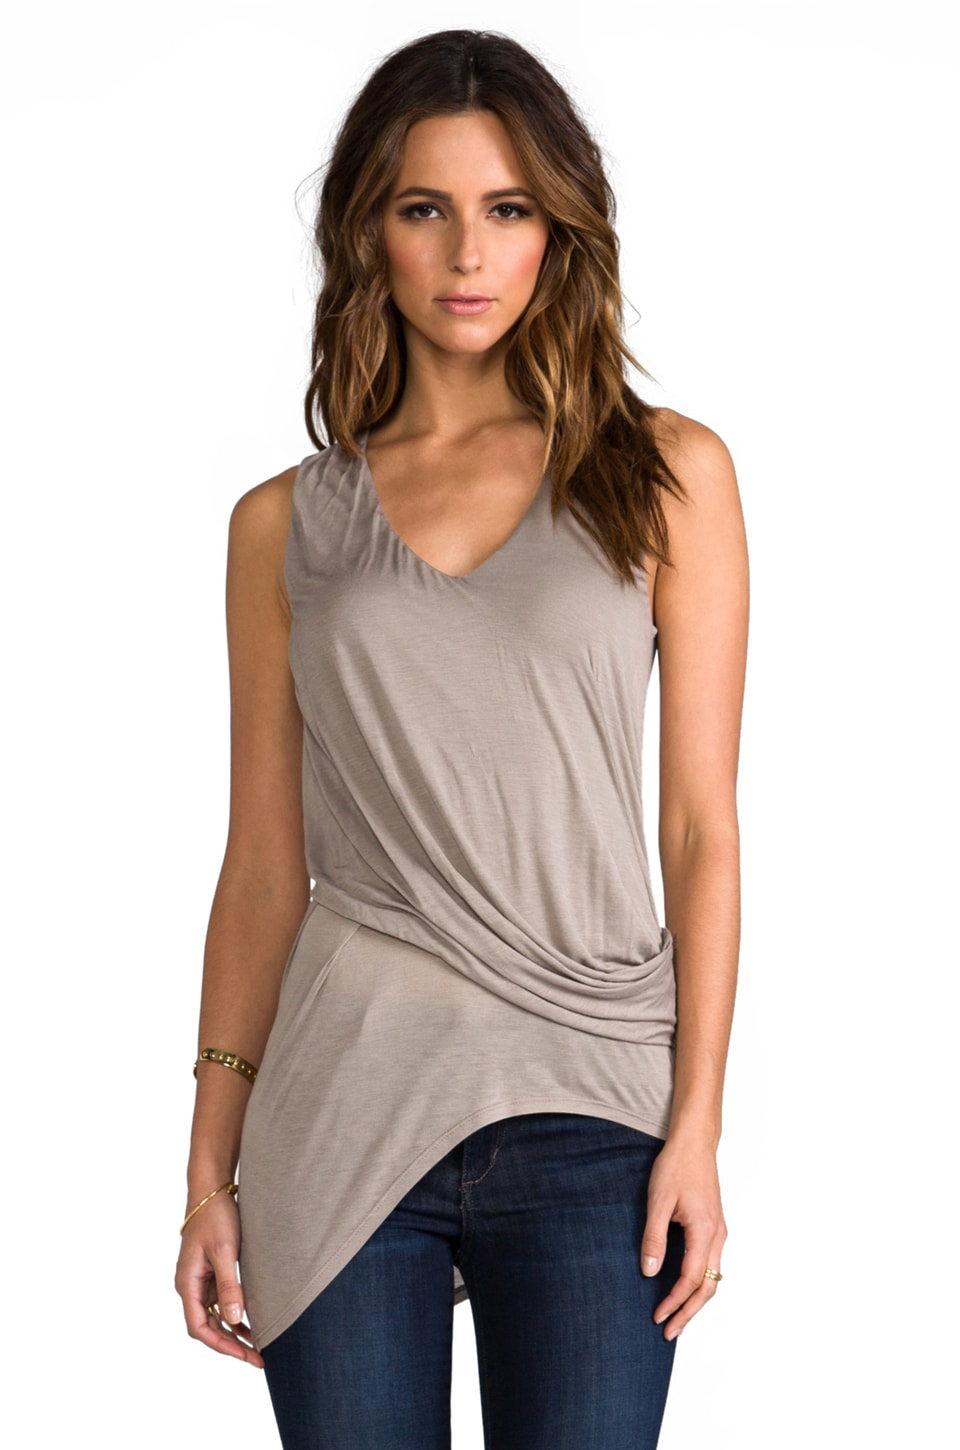 Heather Asymmetrical Surplice Top in Birch